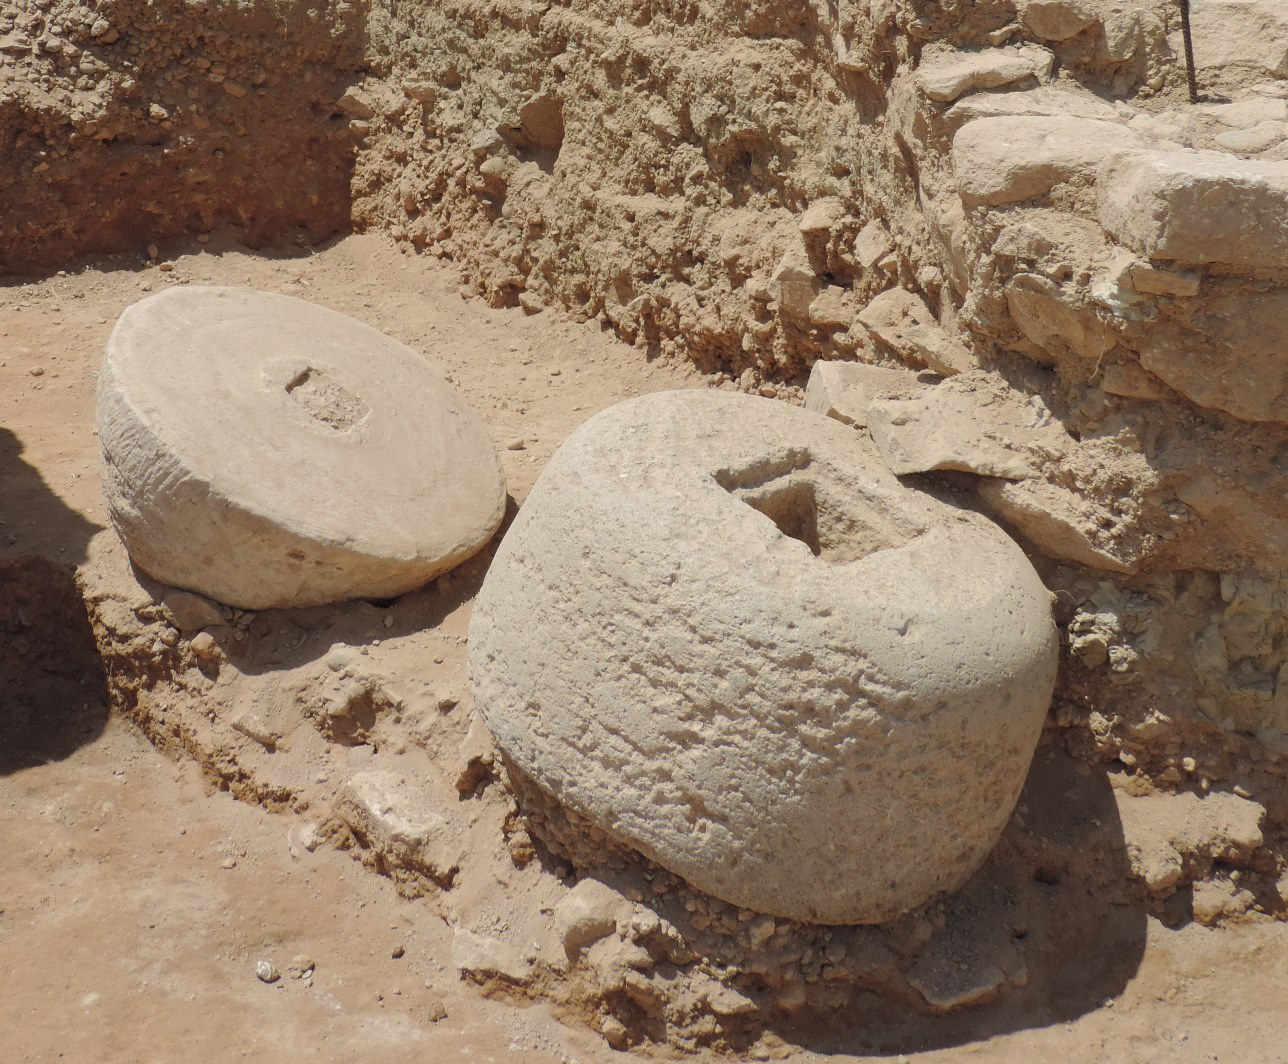 Fig. 10 - The two millstones excavated in trench HA33